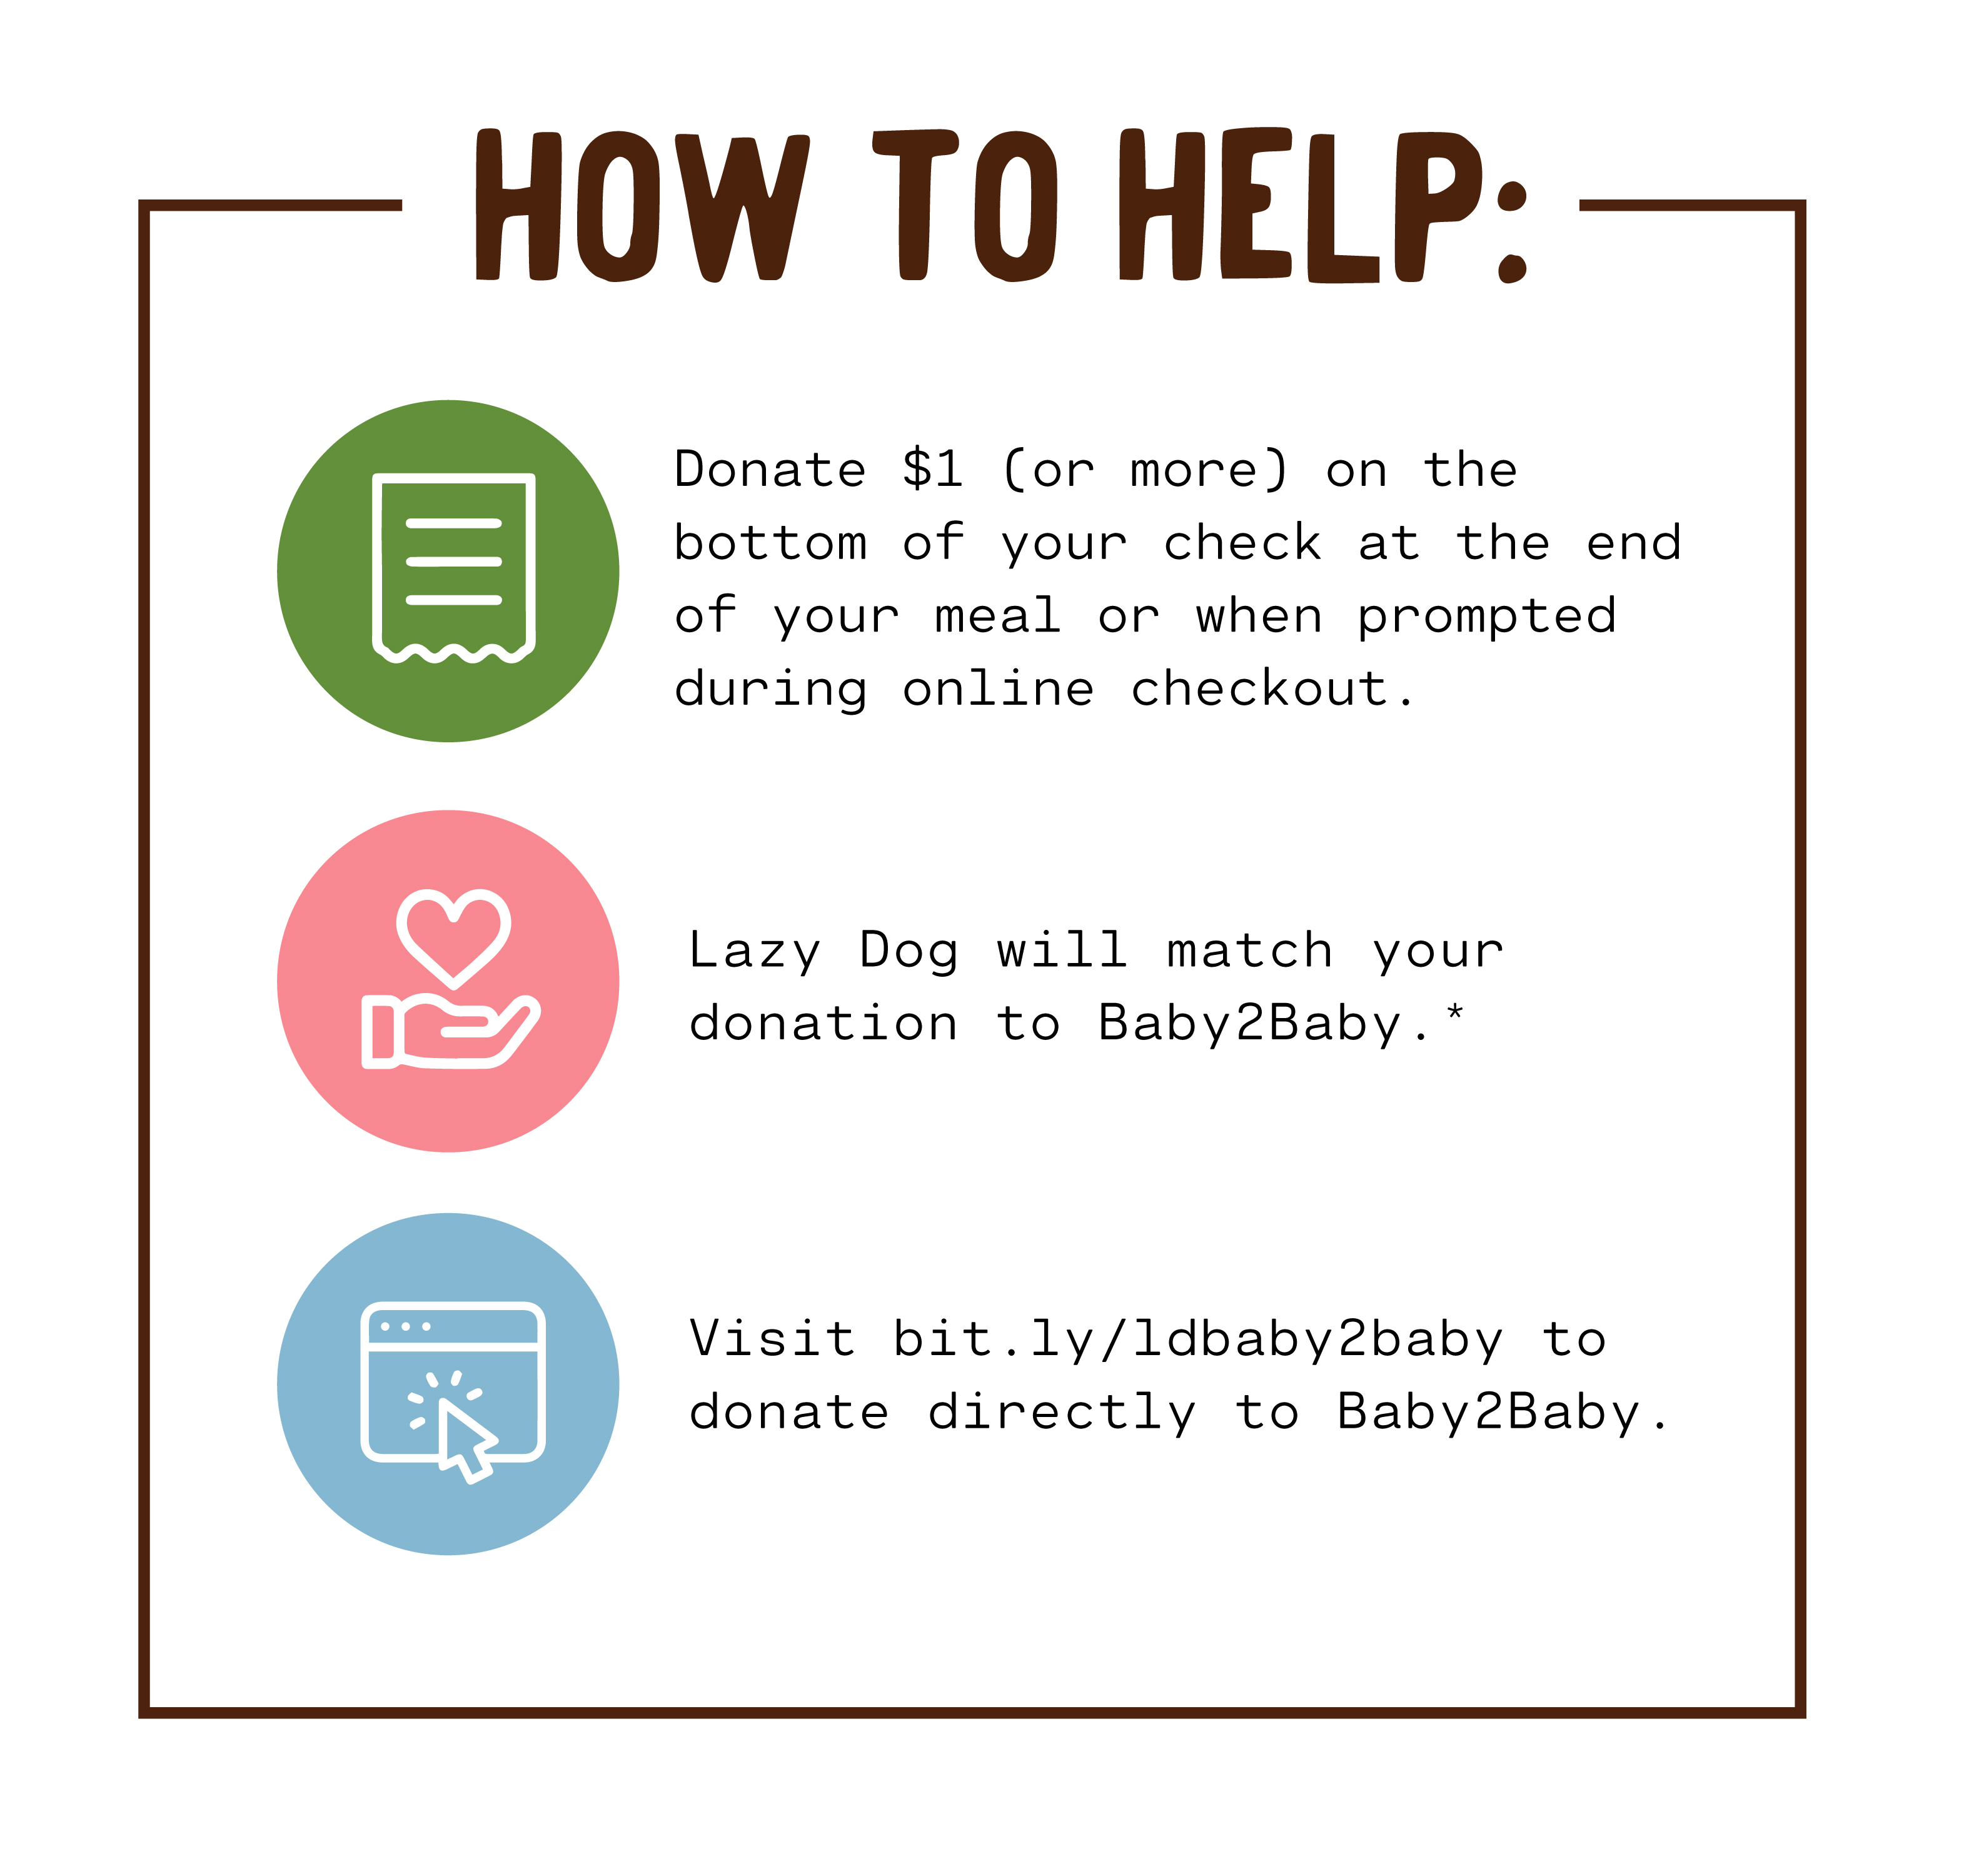 How to Help: 1. Donate $1 (or more) on the bottom of your check at the end of your meal or when prompted during online checkout.  2. Lazy Dog will match your donation for Baby2Baby. 3. Visit bit.ly/LDBaby2Baby to donate directly to Baby2Baby